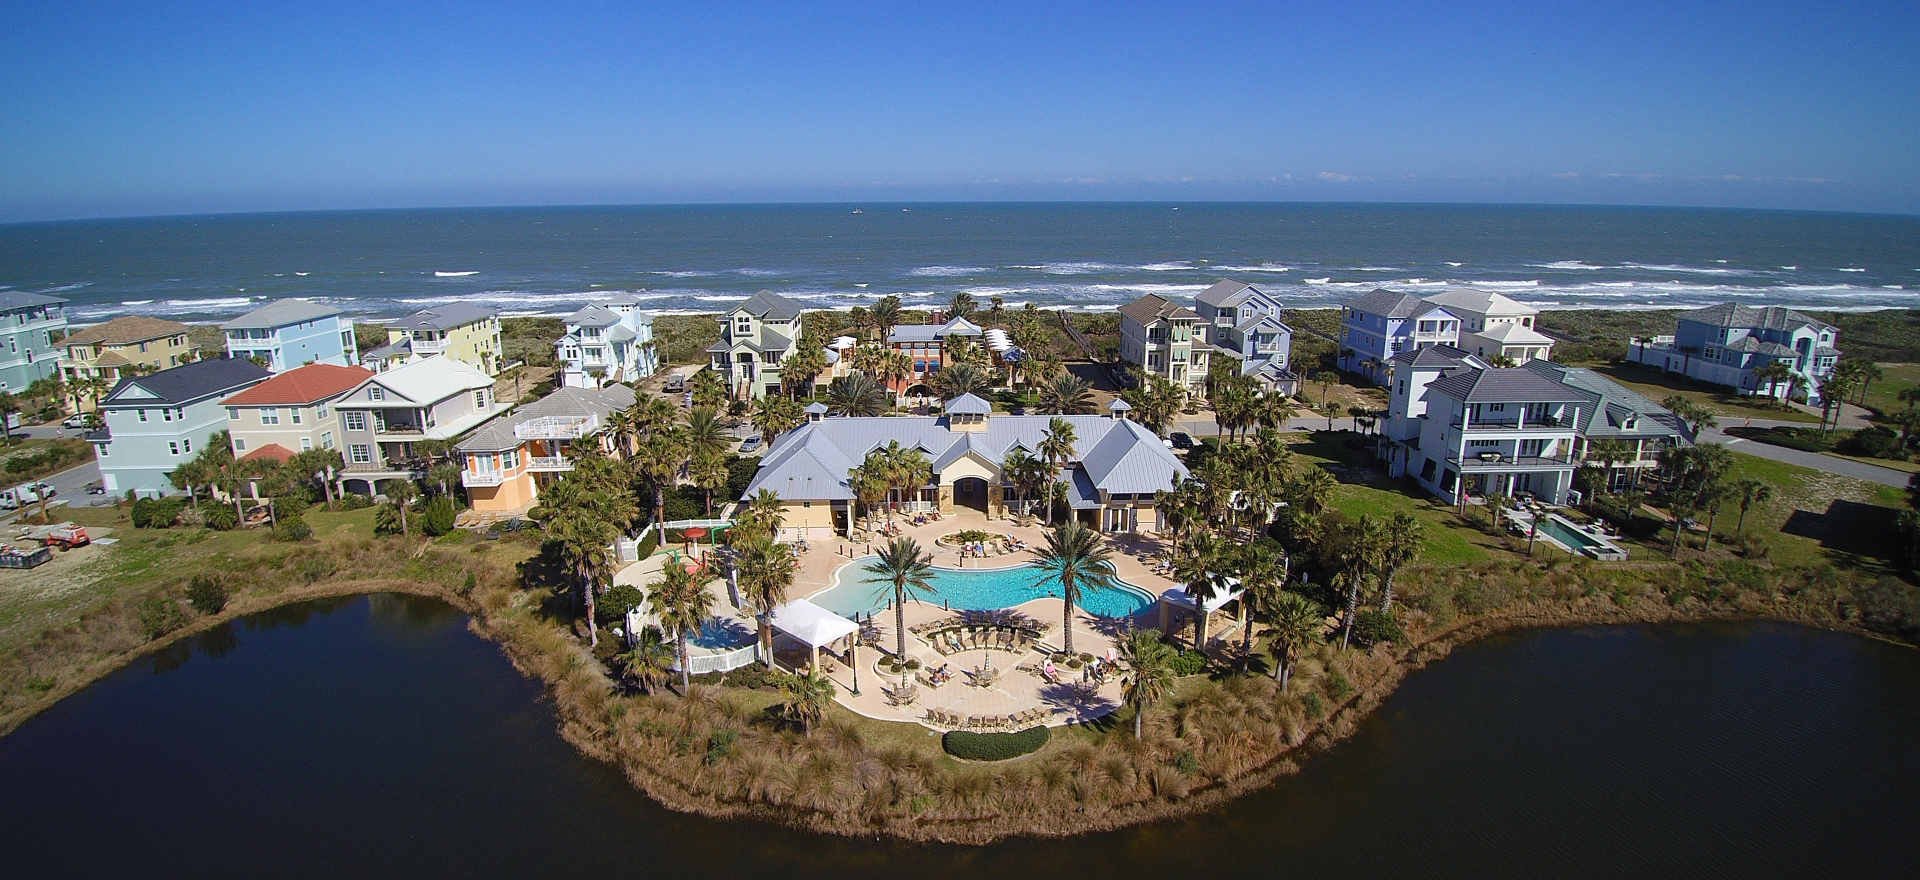 Cinnamon Beach Vacation Rentals – Your Source For The Very Best - Cinnamon Beach Florida Map